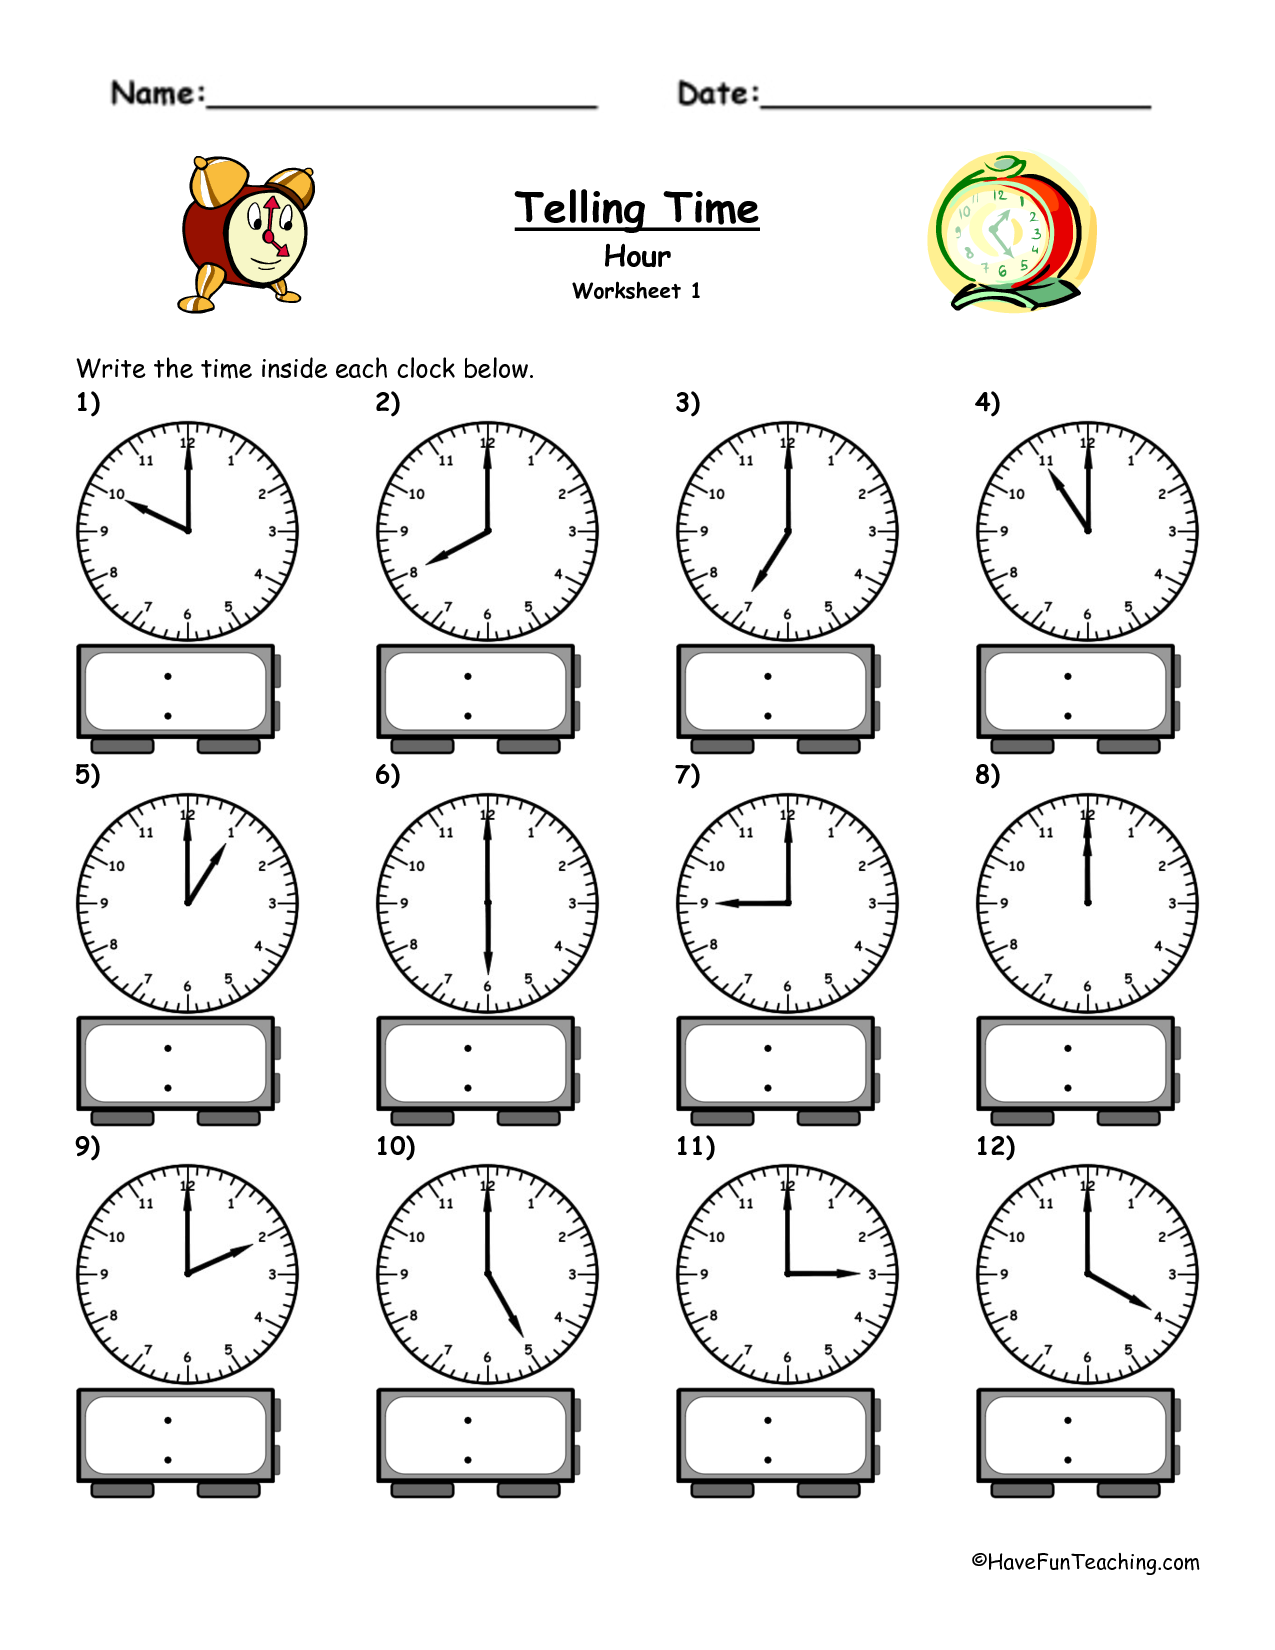 Worksheets Free Time Worksheets telling time worksheets and google on pinterest